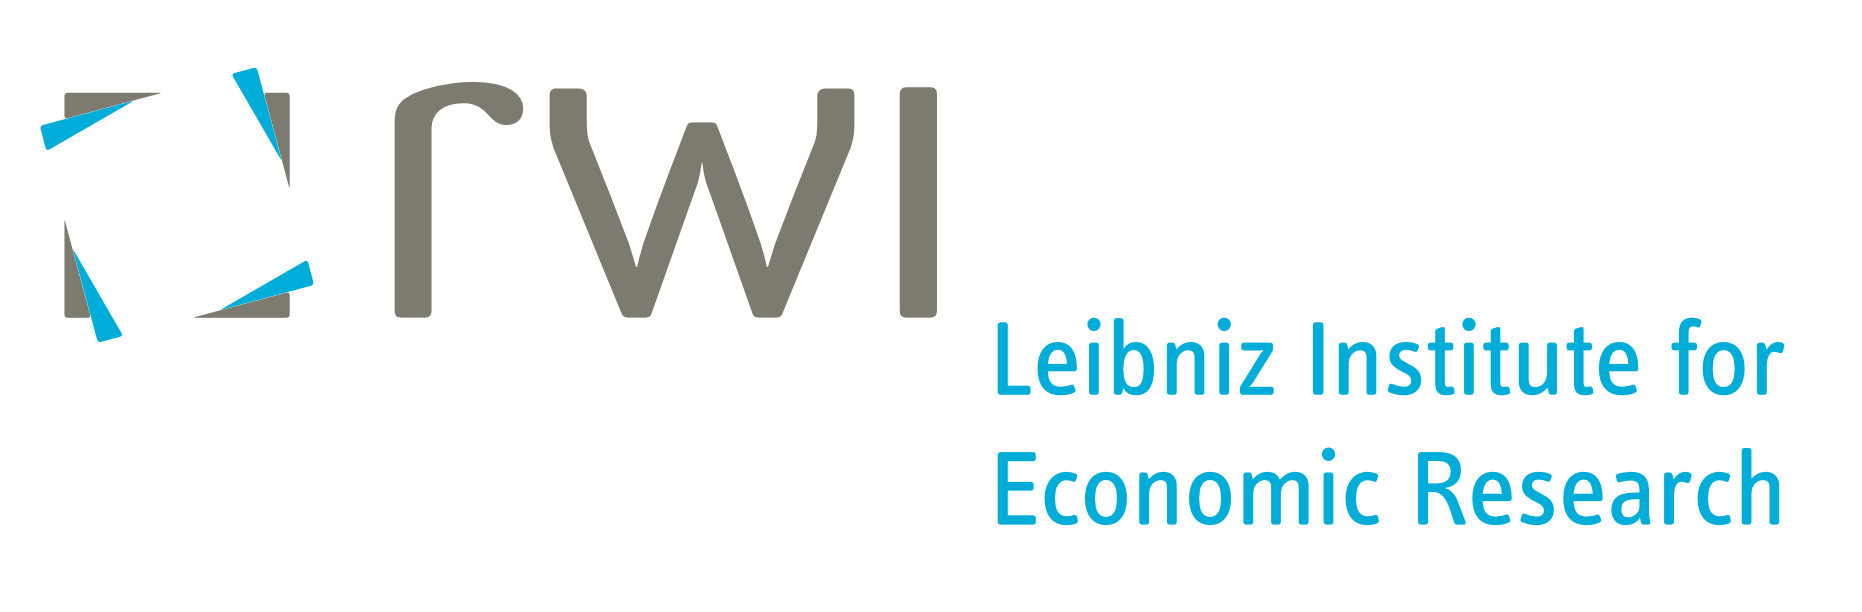 Leibniz Institute for Economic Research (RWI)